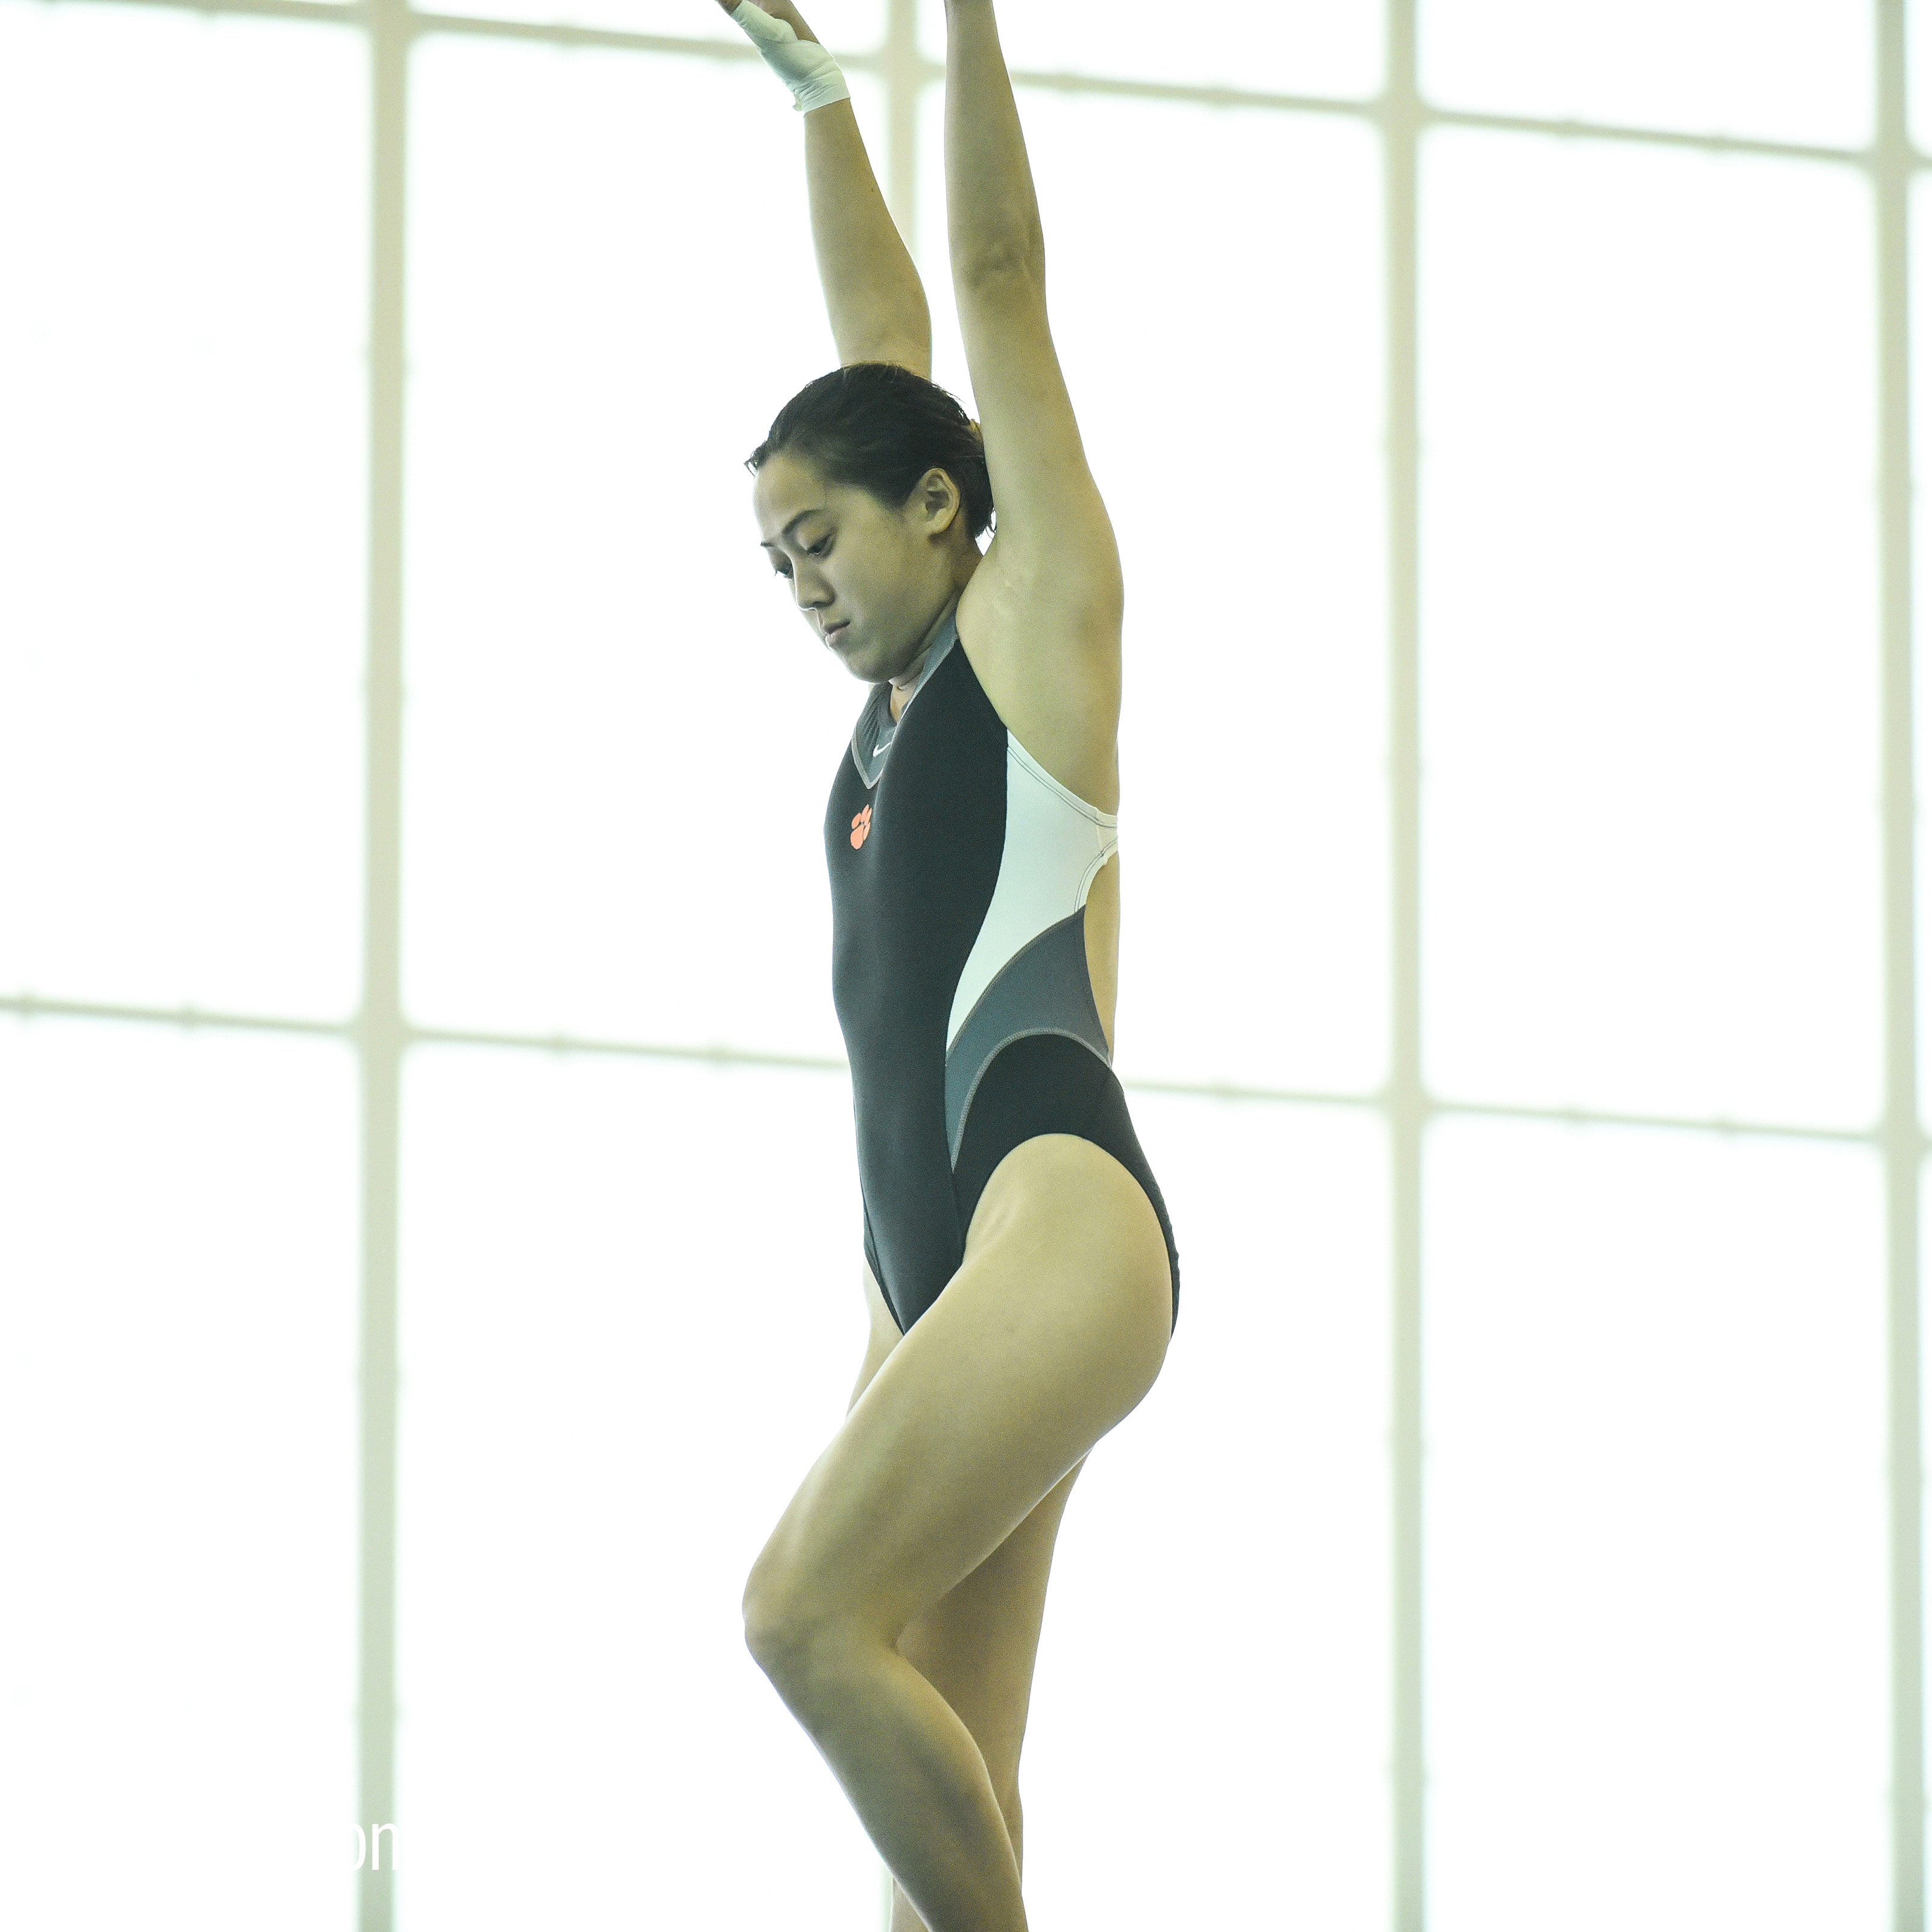 Lim Shines as Diving Competes at GT and VT Invitationals